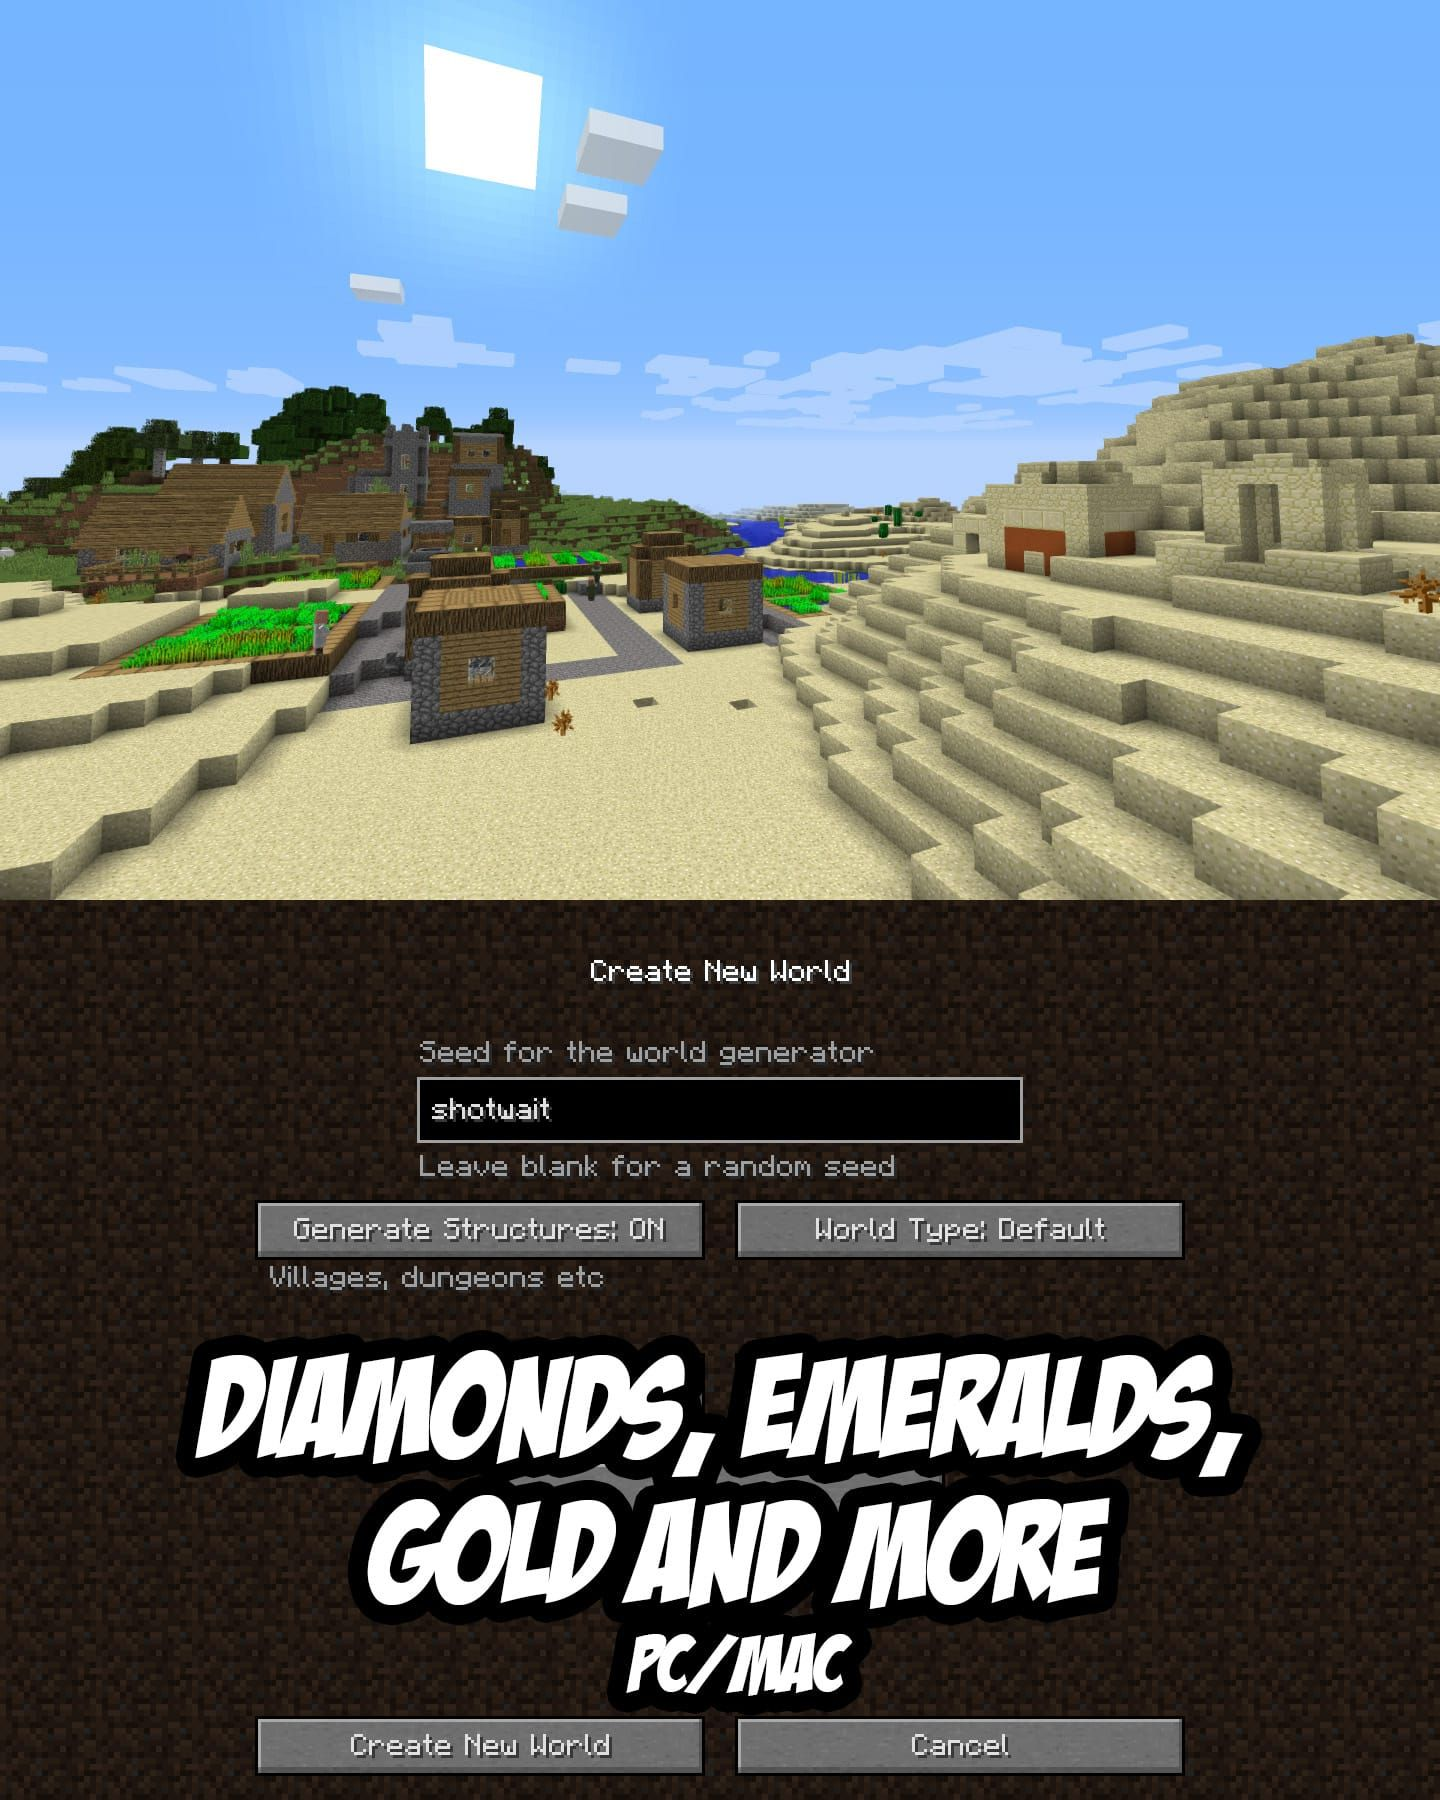 Diamonds, Emeralds, Gold And More (PC/Mac Seed